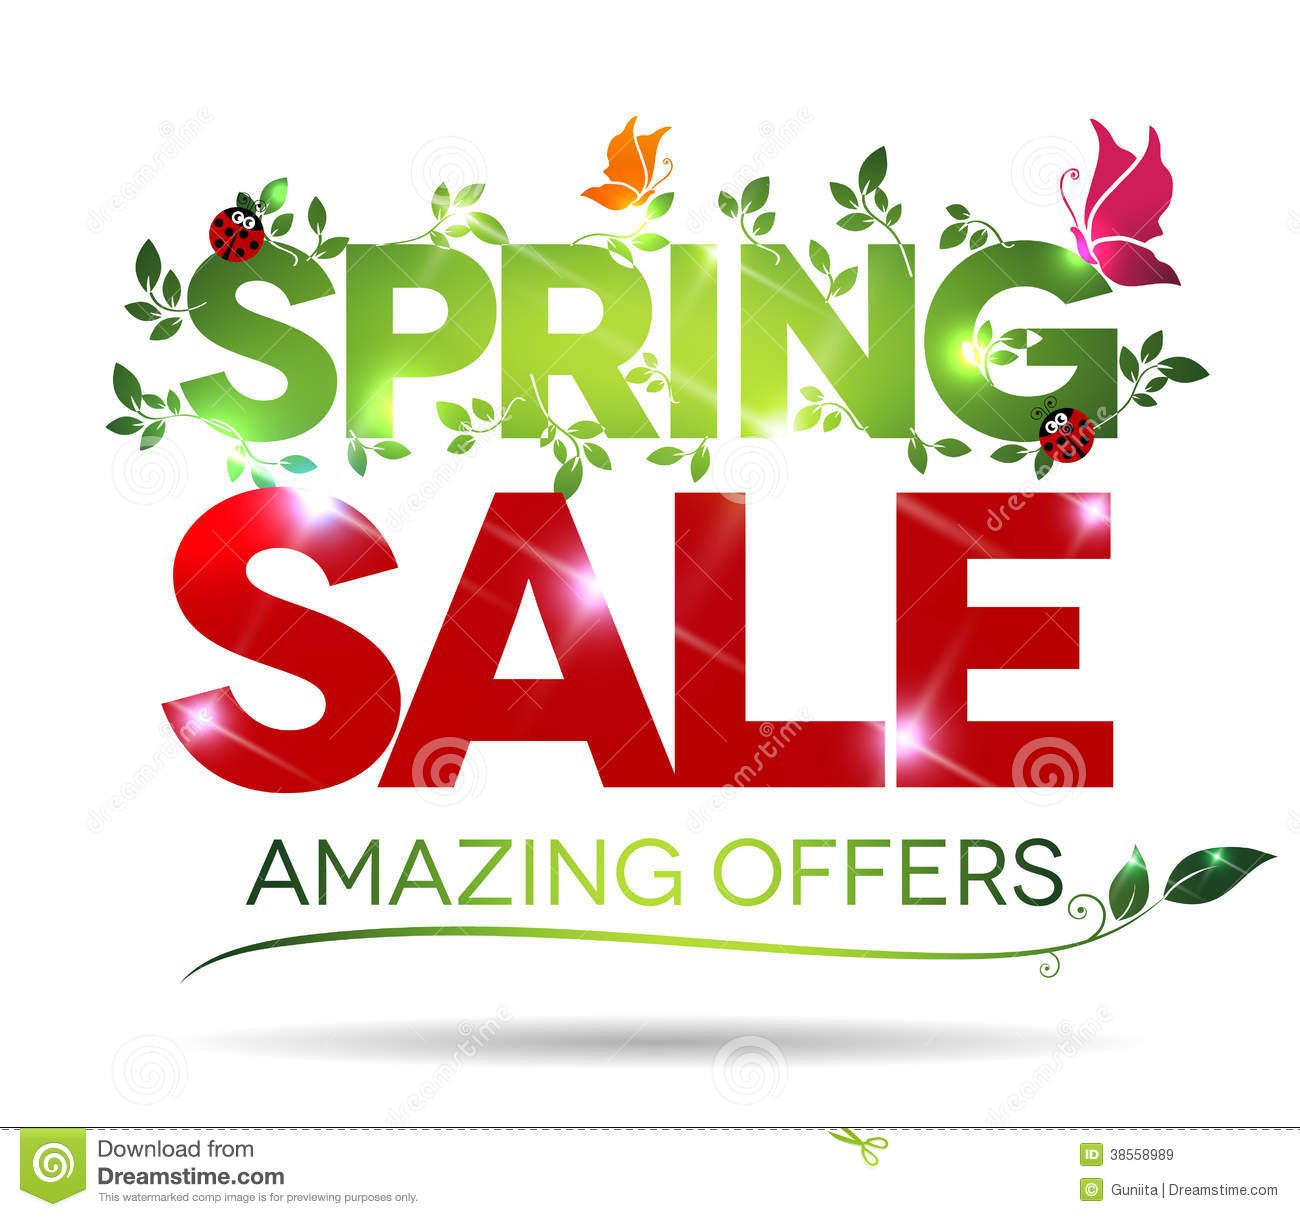 Spring Sale: Spring Sale, Amazing Offers Message Royalty Free Stock